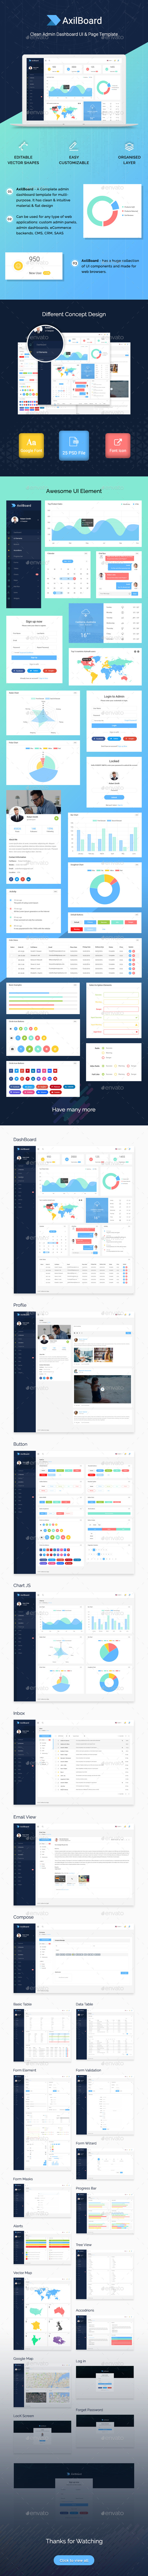 AxilBoard - Clean Admin Dashboard UI & Page Template - User Interfaces Web Elements